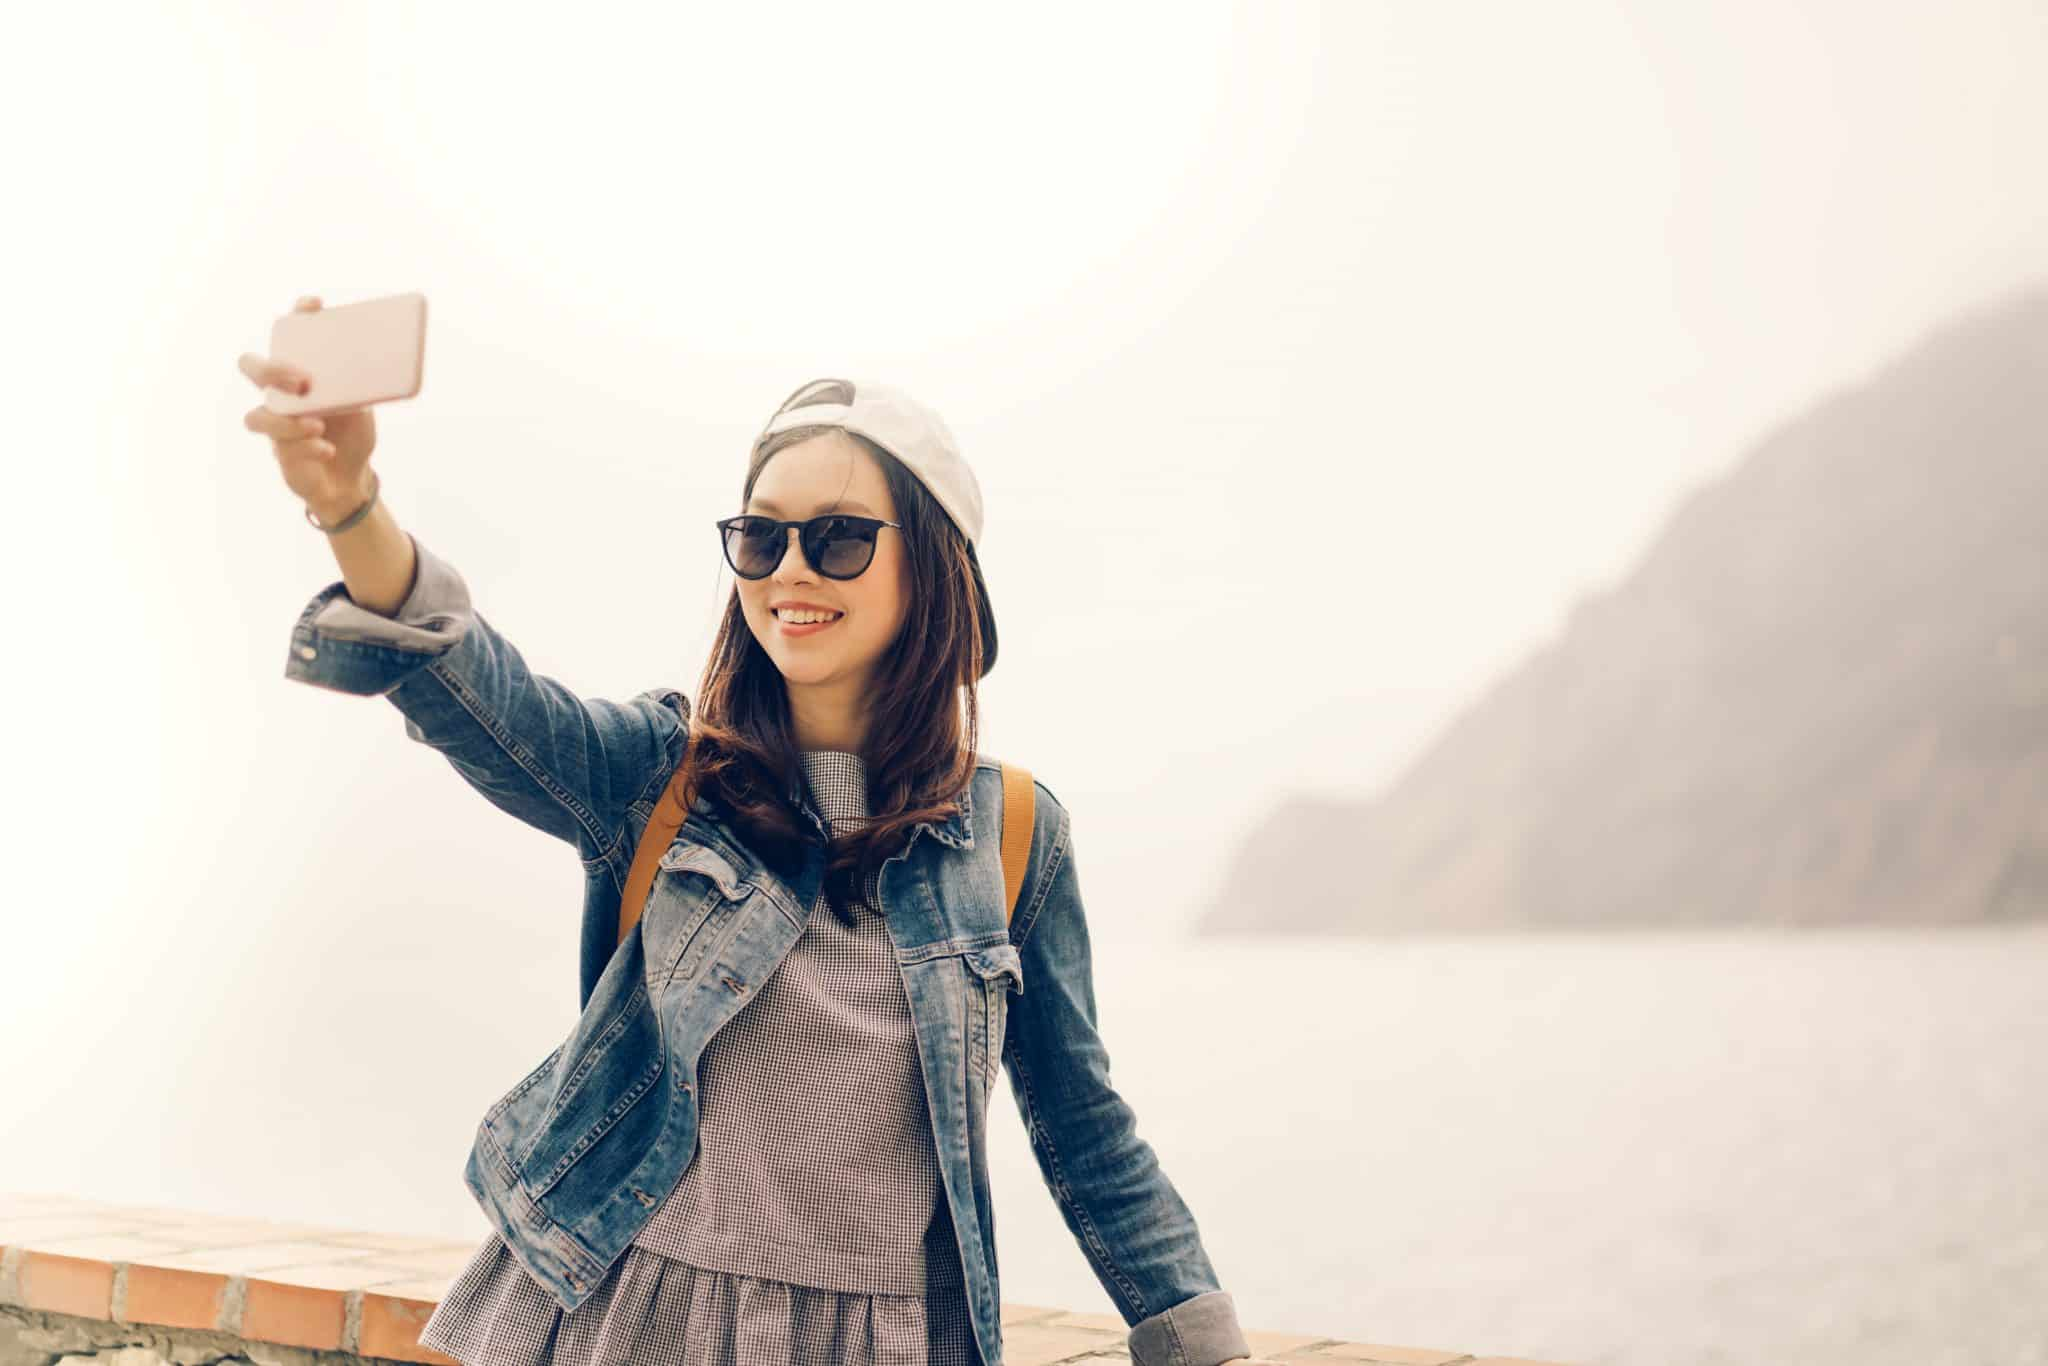 pop-up selfie camera